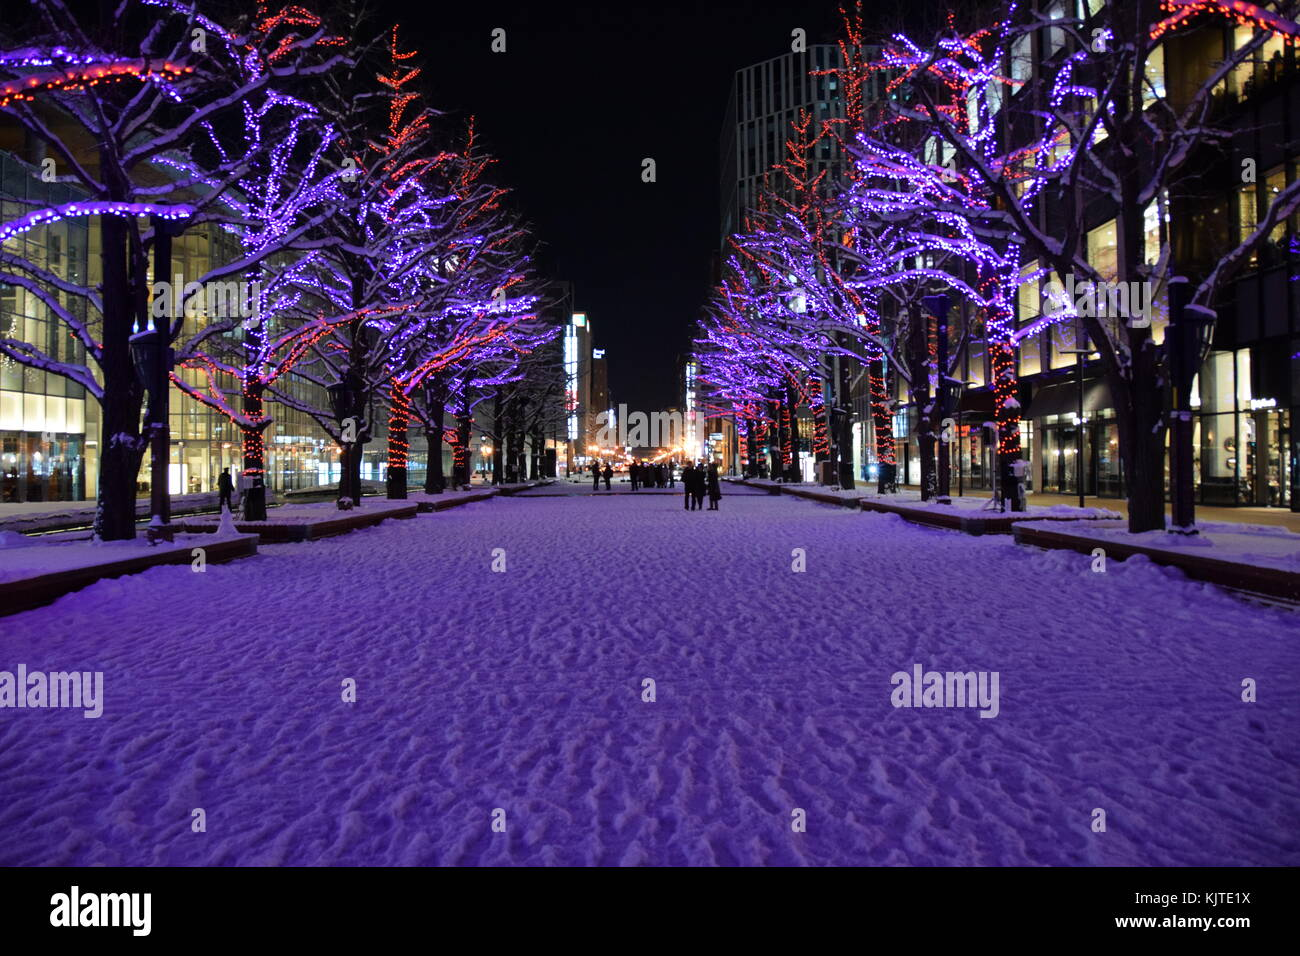 Winter In Sapporo Japan Night Picture With Snow And Trees Christmas Lighting People The Background